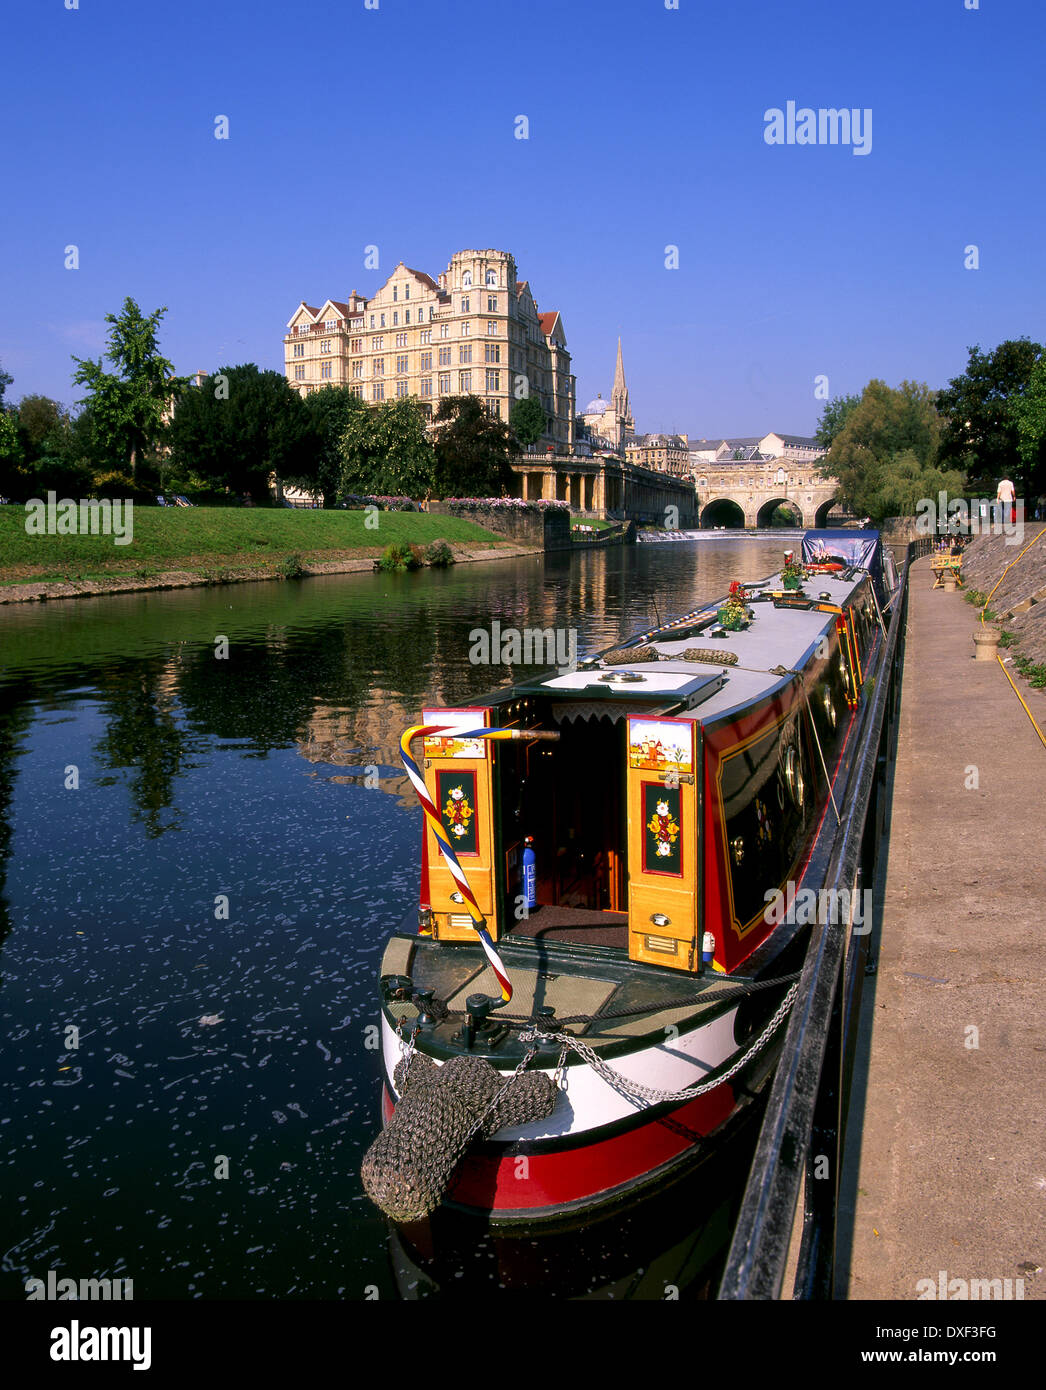 SCENE ON RIVER AVAON WITH A NARROWBOAT AND VIEW TOWARDS PULTENEY BRIDGE .CITY OF BATH,SOMERSET - Stock Image